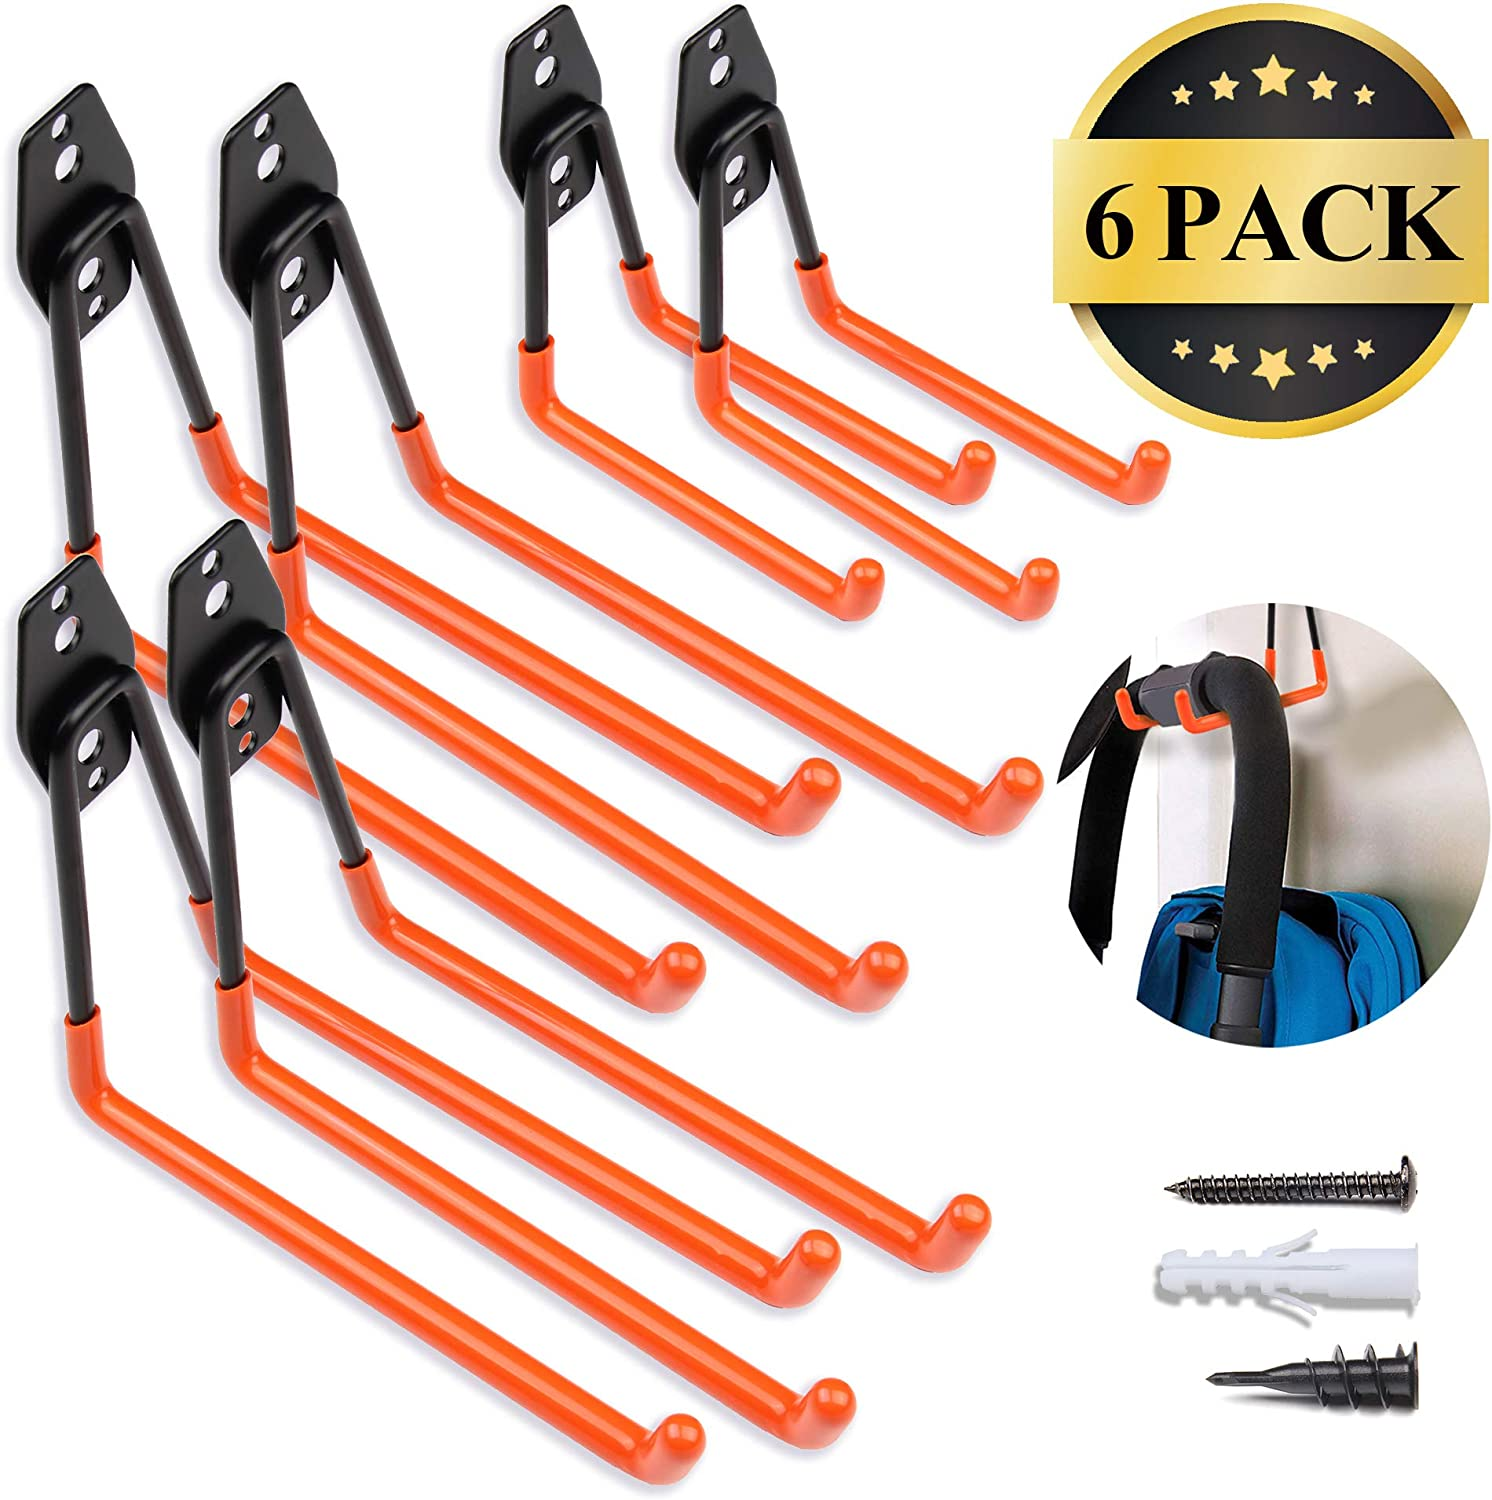 Steel Garage Storage Utility Double Hooks, Easy to Install Wall Mount Heavy Duty Hangers for Organizing Large Power Tools, Anti Slip Design Holding Ladders, Chairs, Bikes, Ropes, Bulk Items, Pack of 6